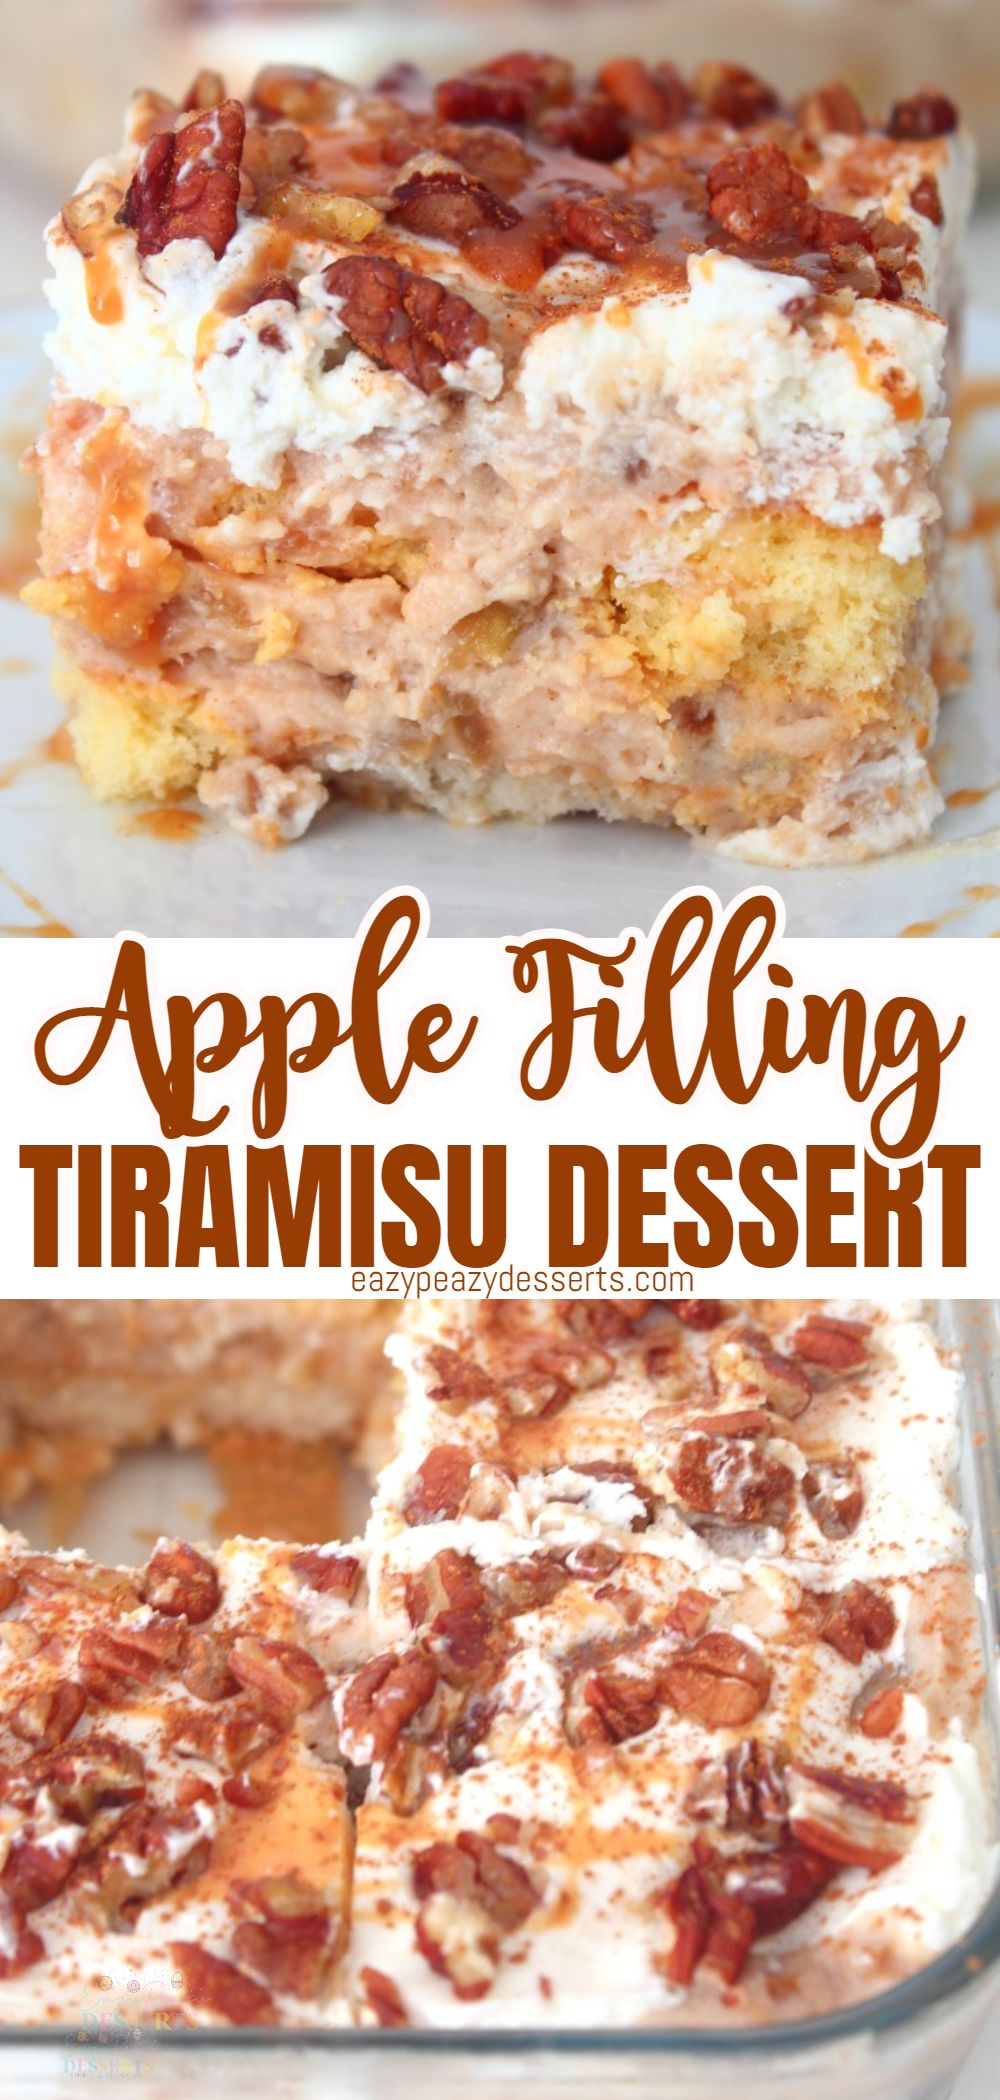 Tiramisu is just such an amazing desert! The classic version is delicious, but many varieties are developing and they are just so good! Today I'm going to show you how to make a super-tasty apple tiramisu the easy way! via @eazypeazydesserts